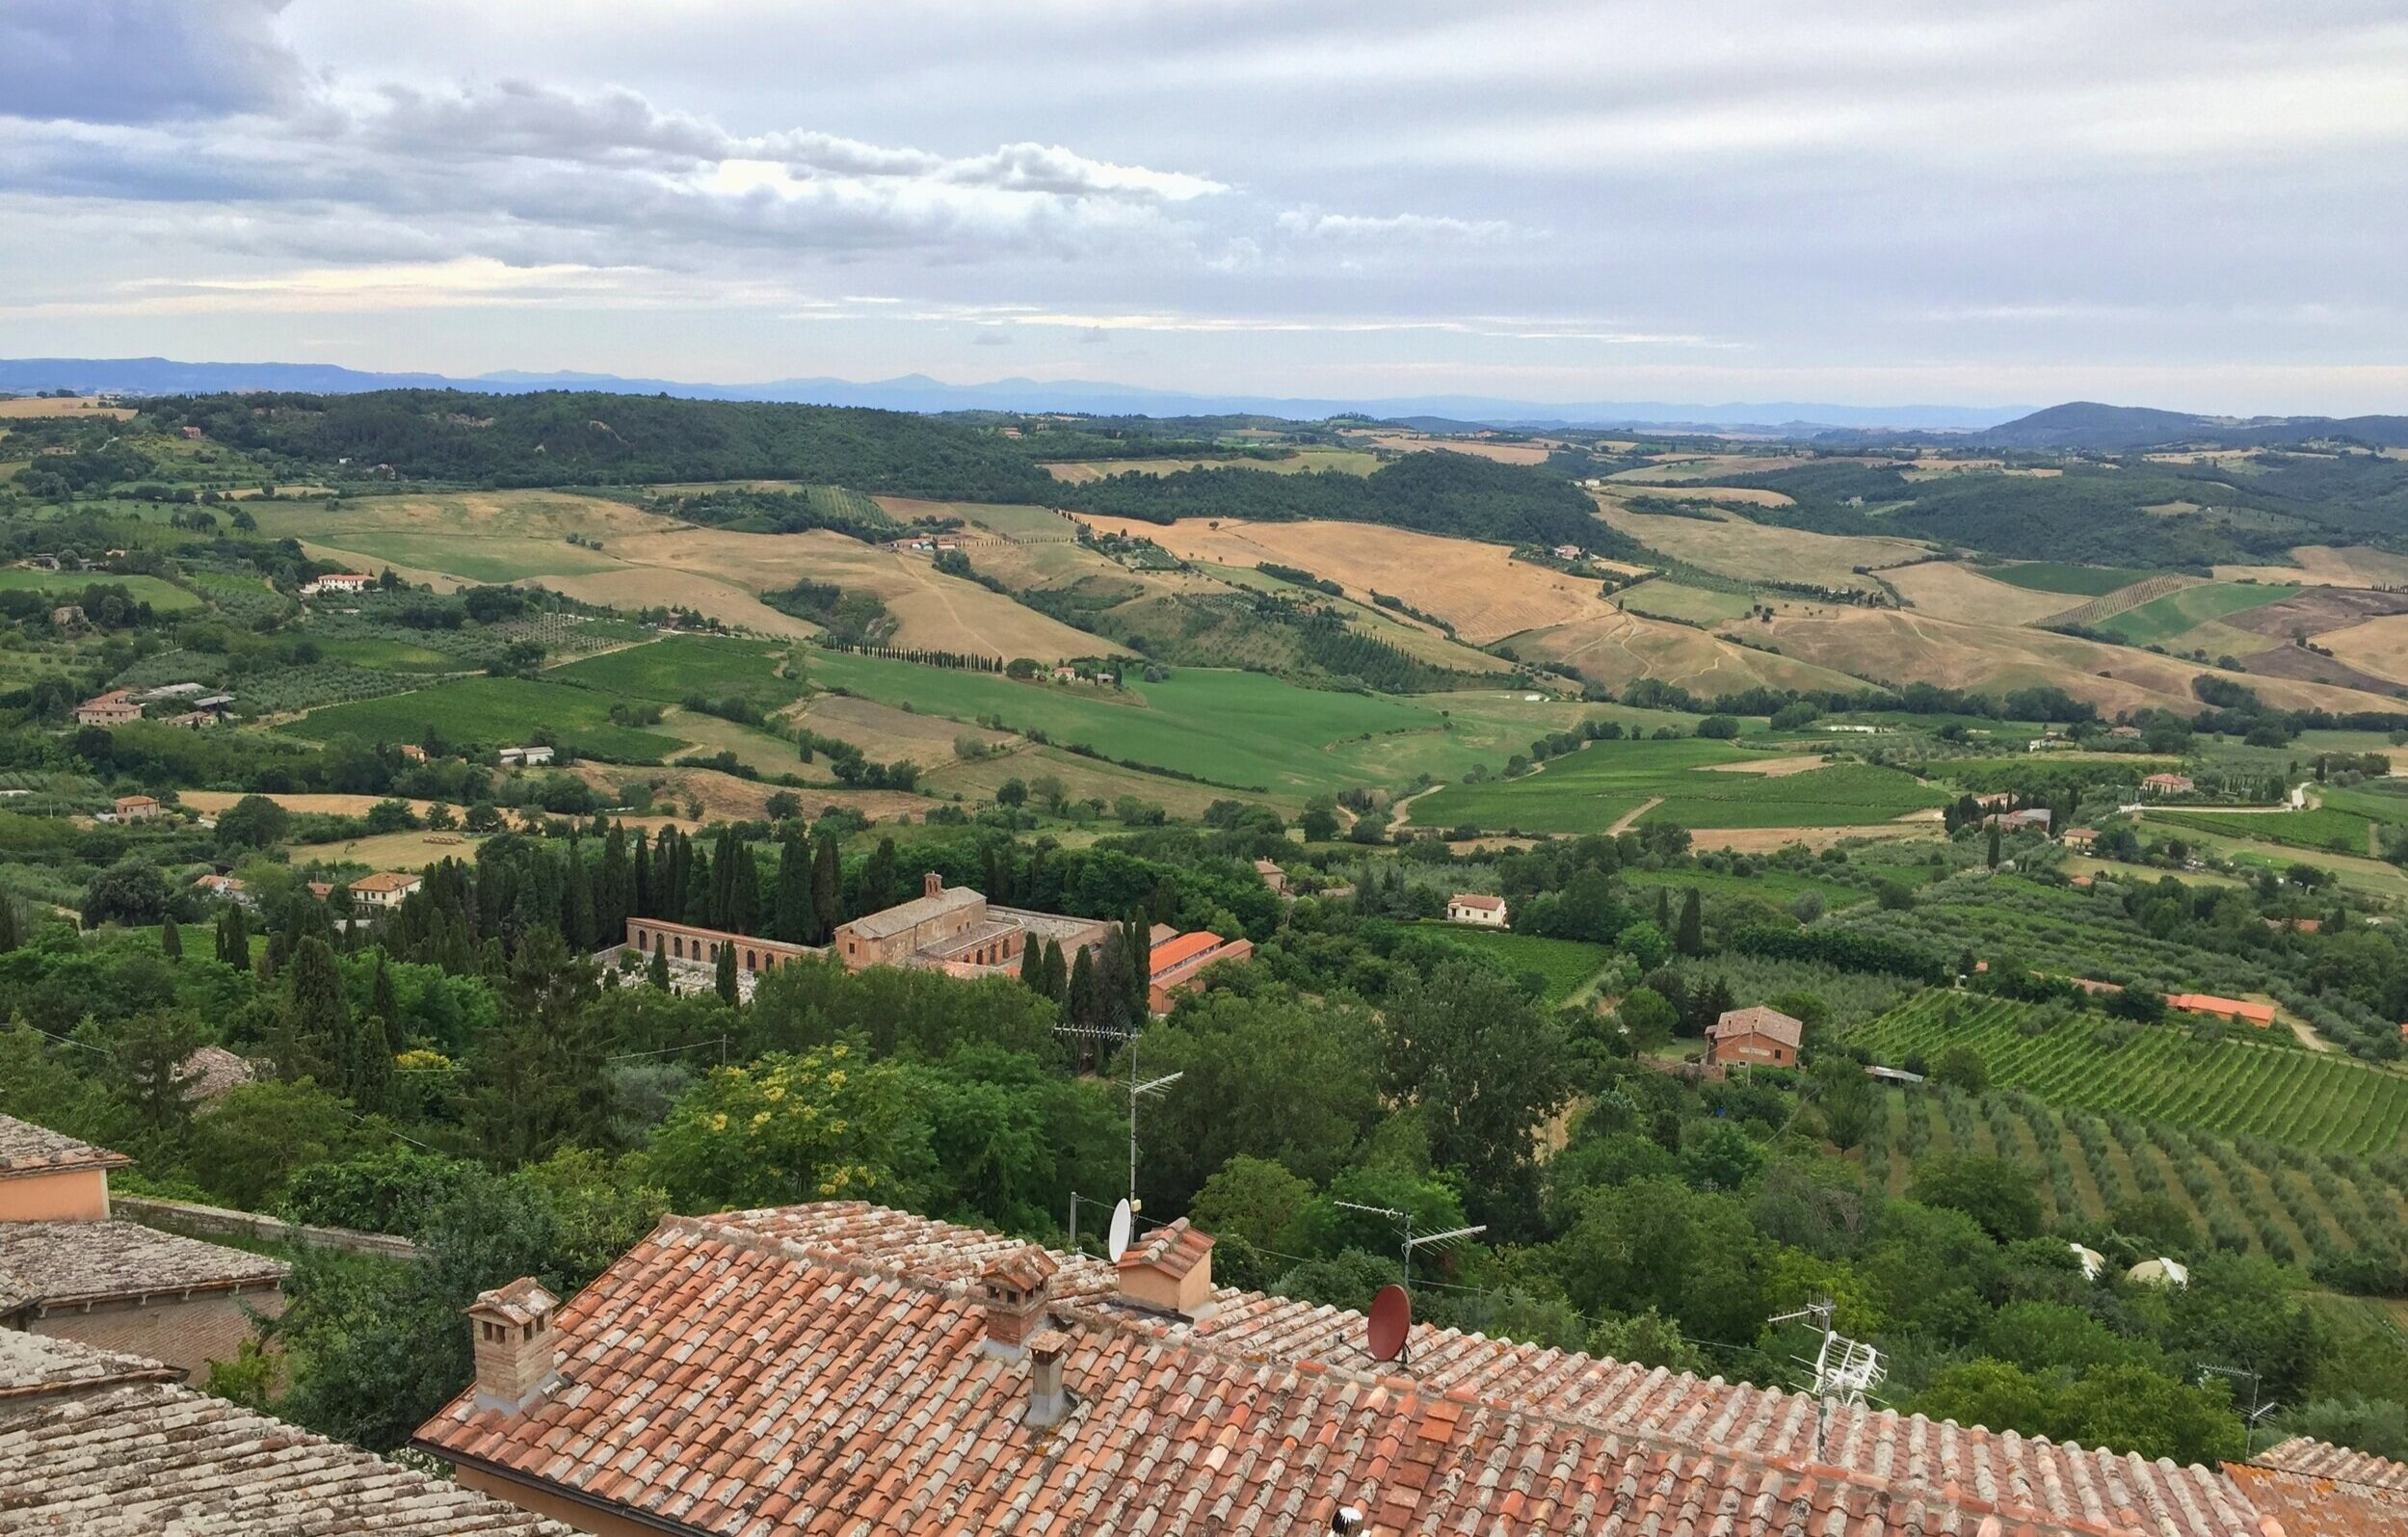 The bucolic view of Montalcino, Tuscany (photo by Breno Salvador, July 2016)